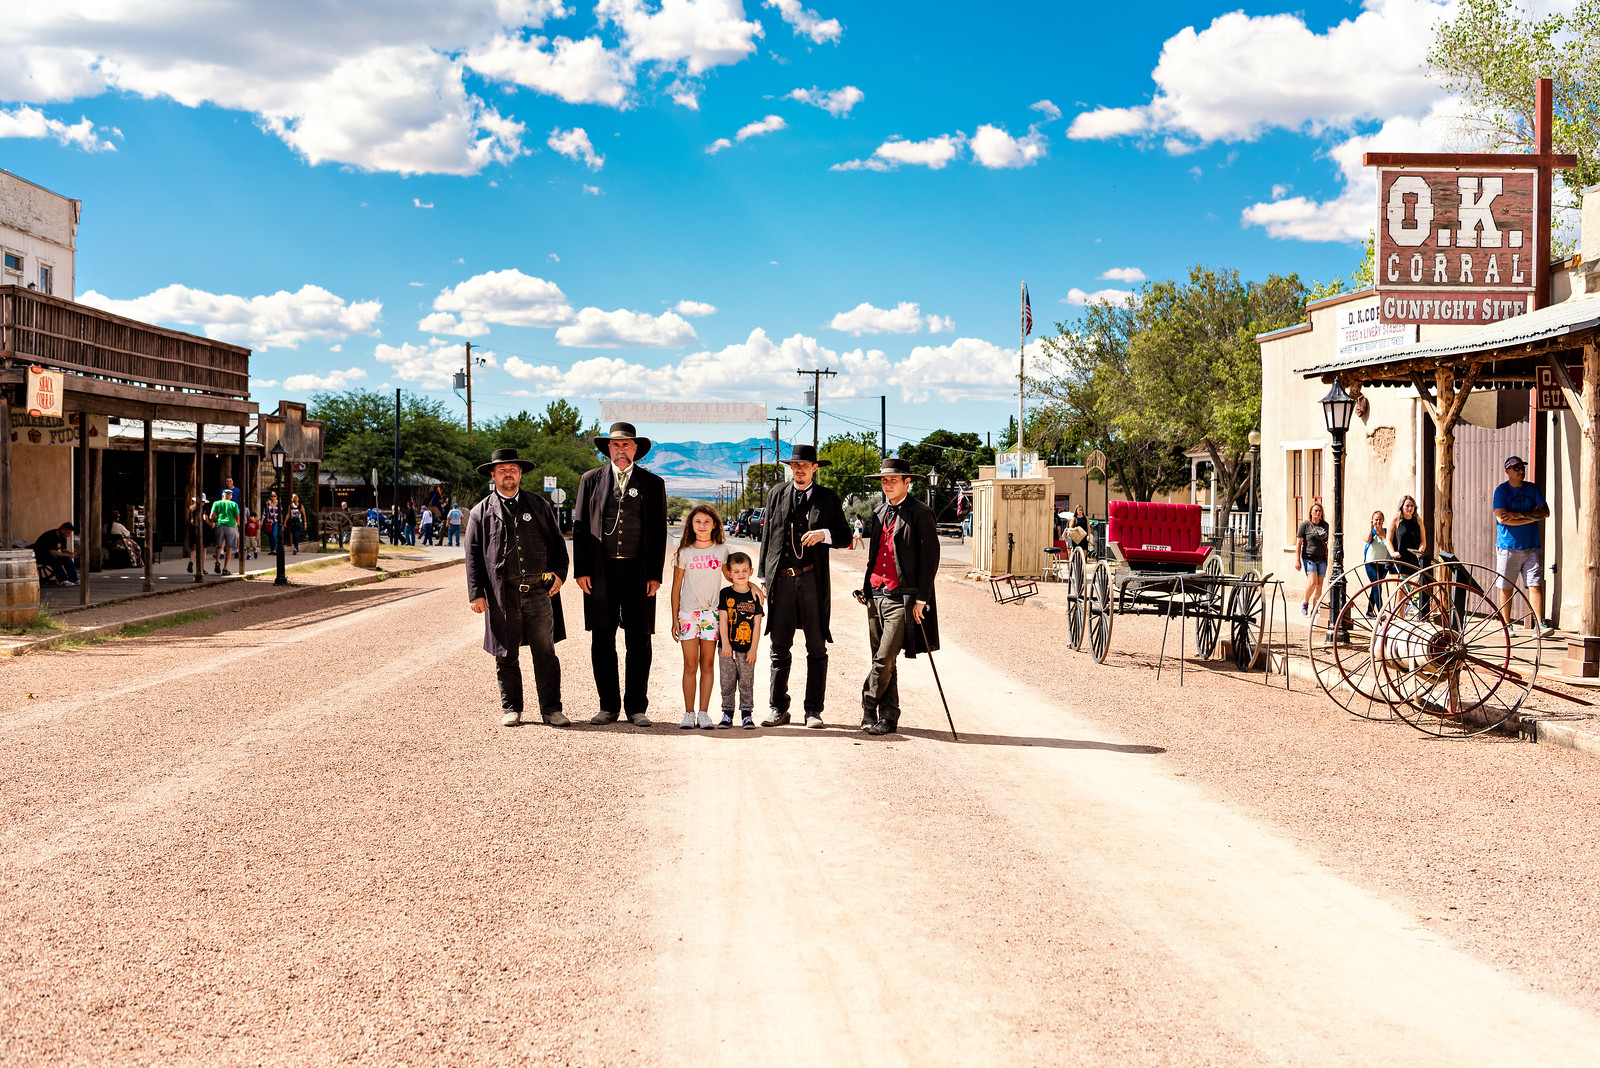 What to do in tombstone